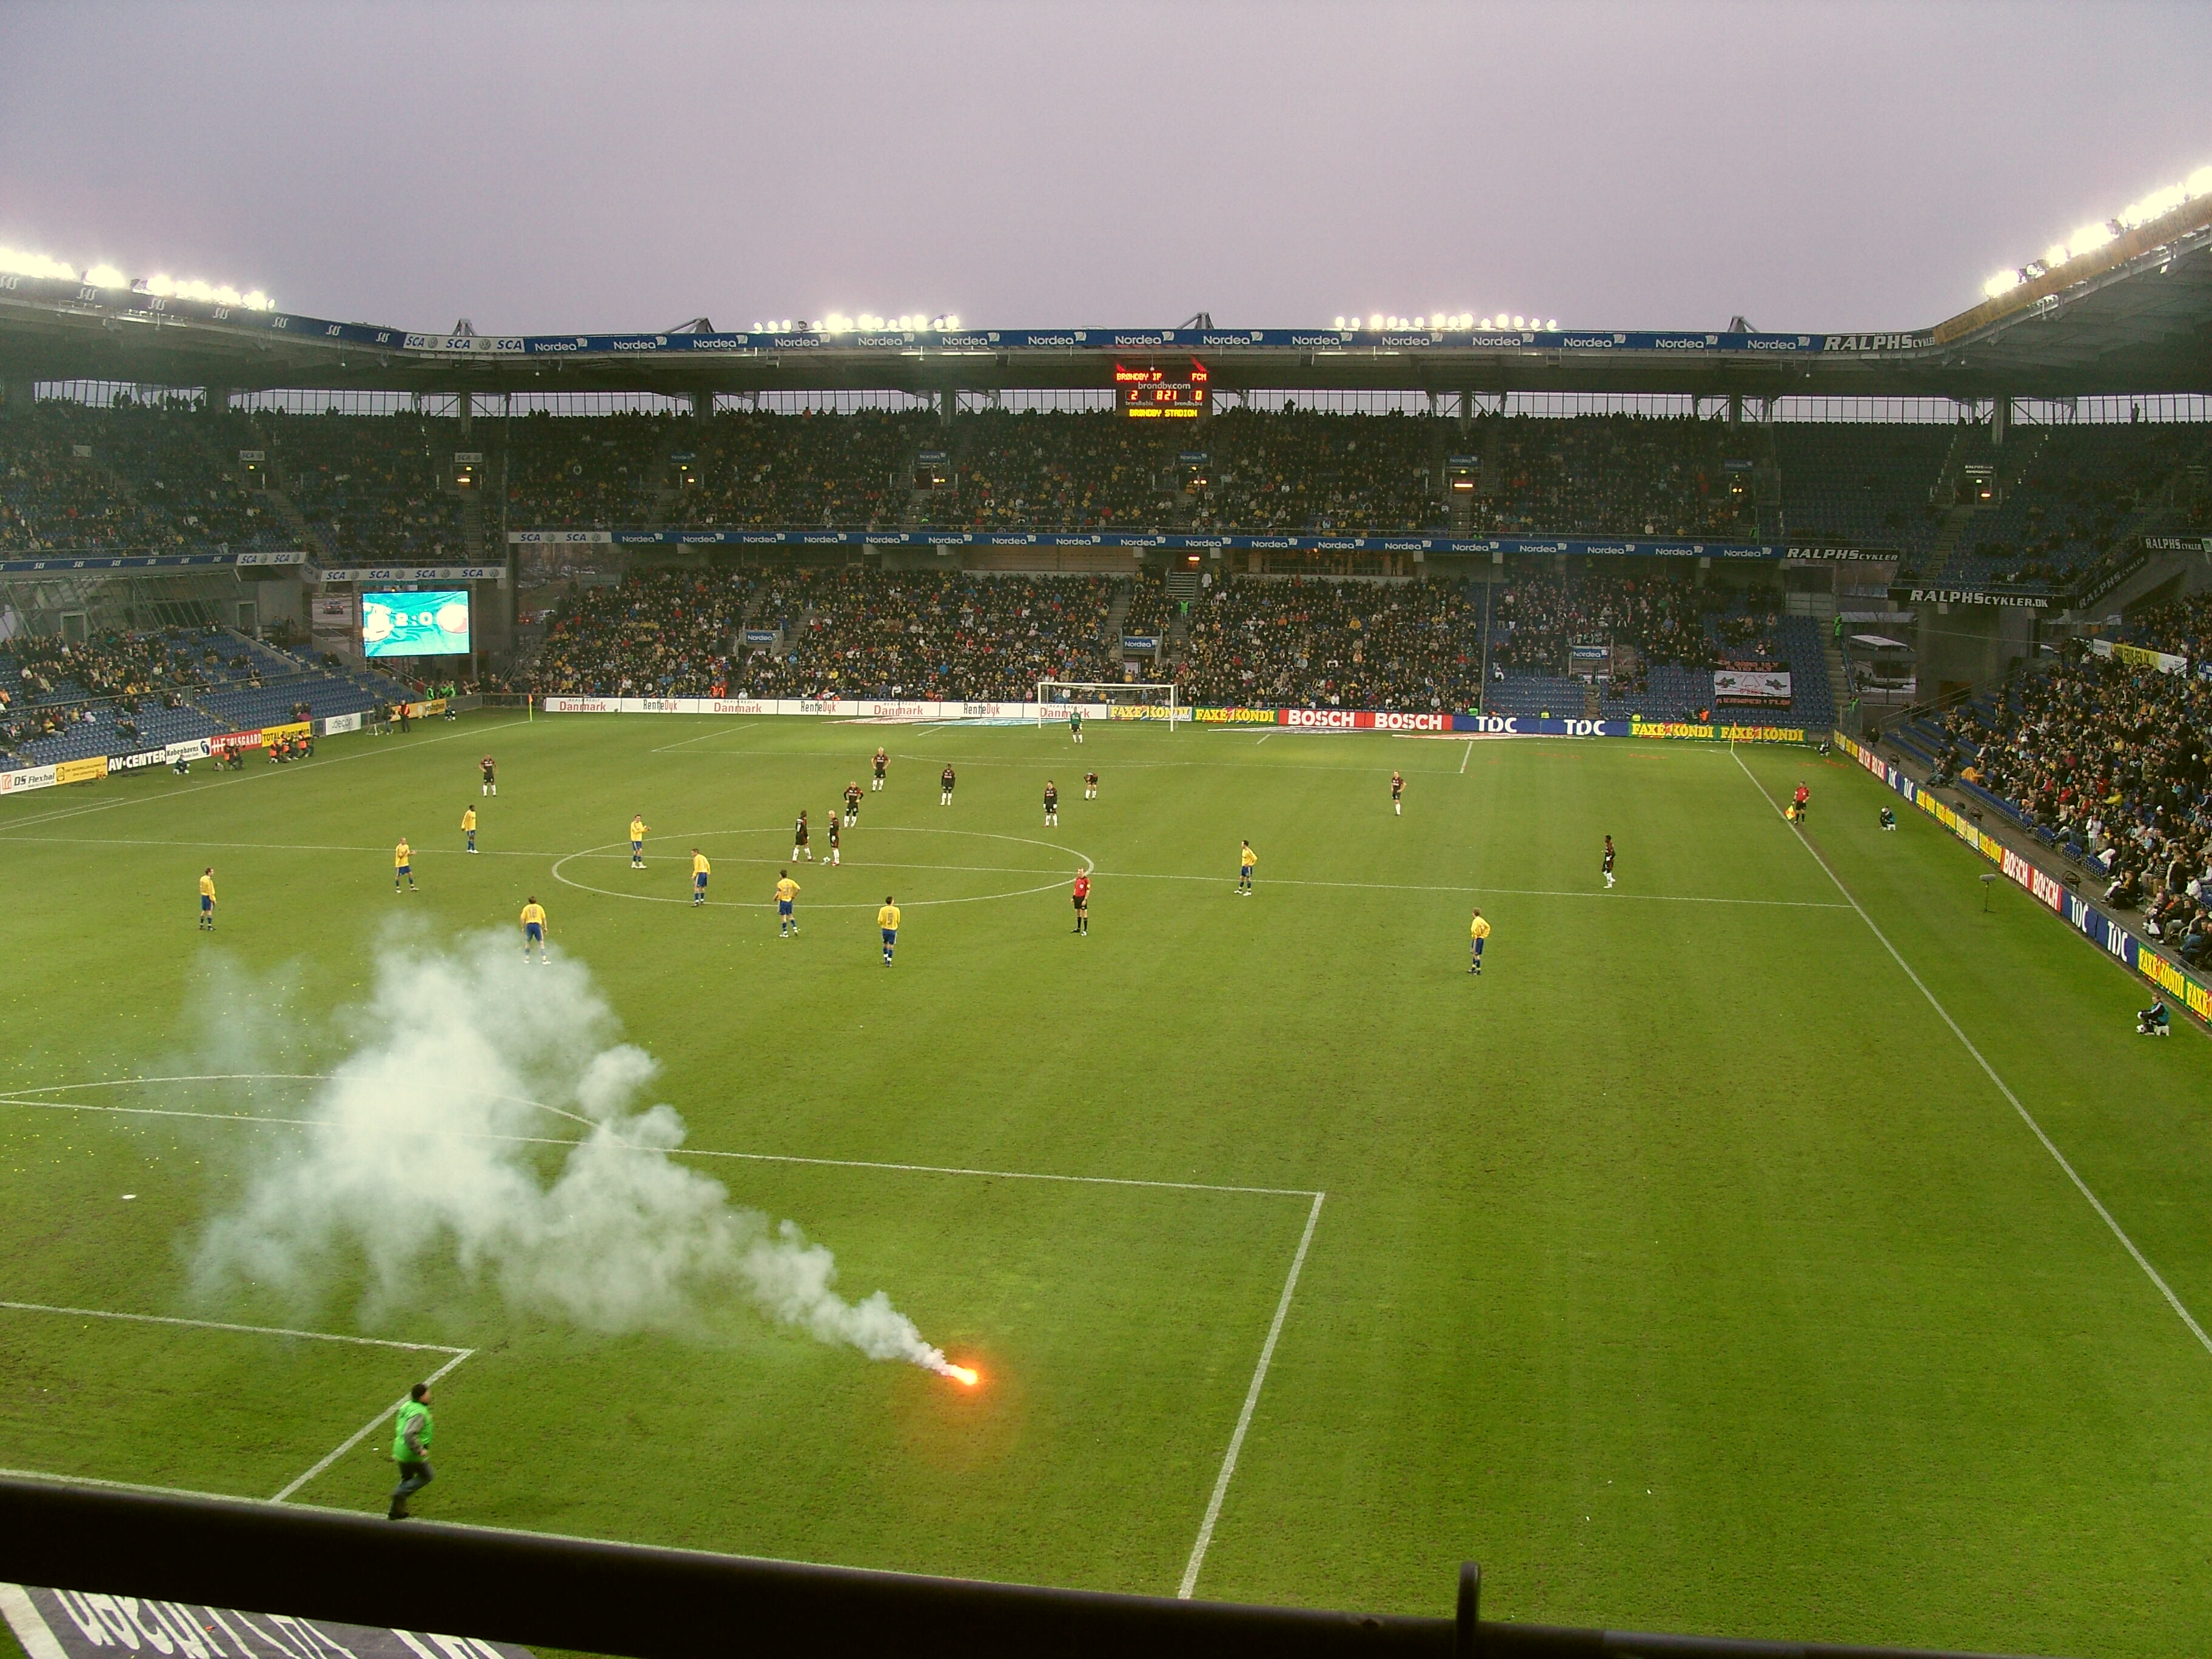 The Brondby fans celebrate an early goal